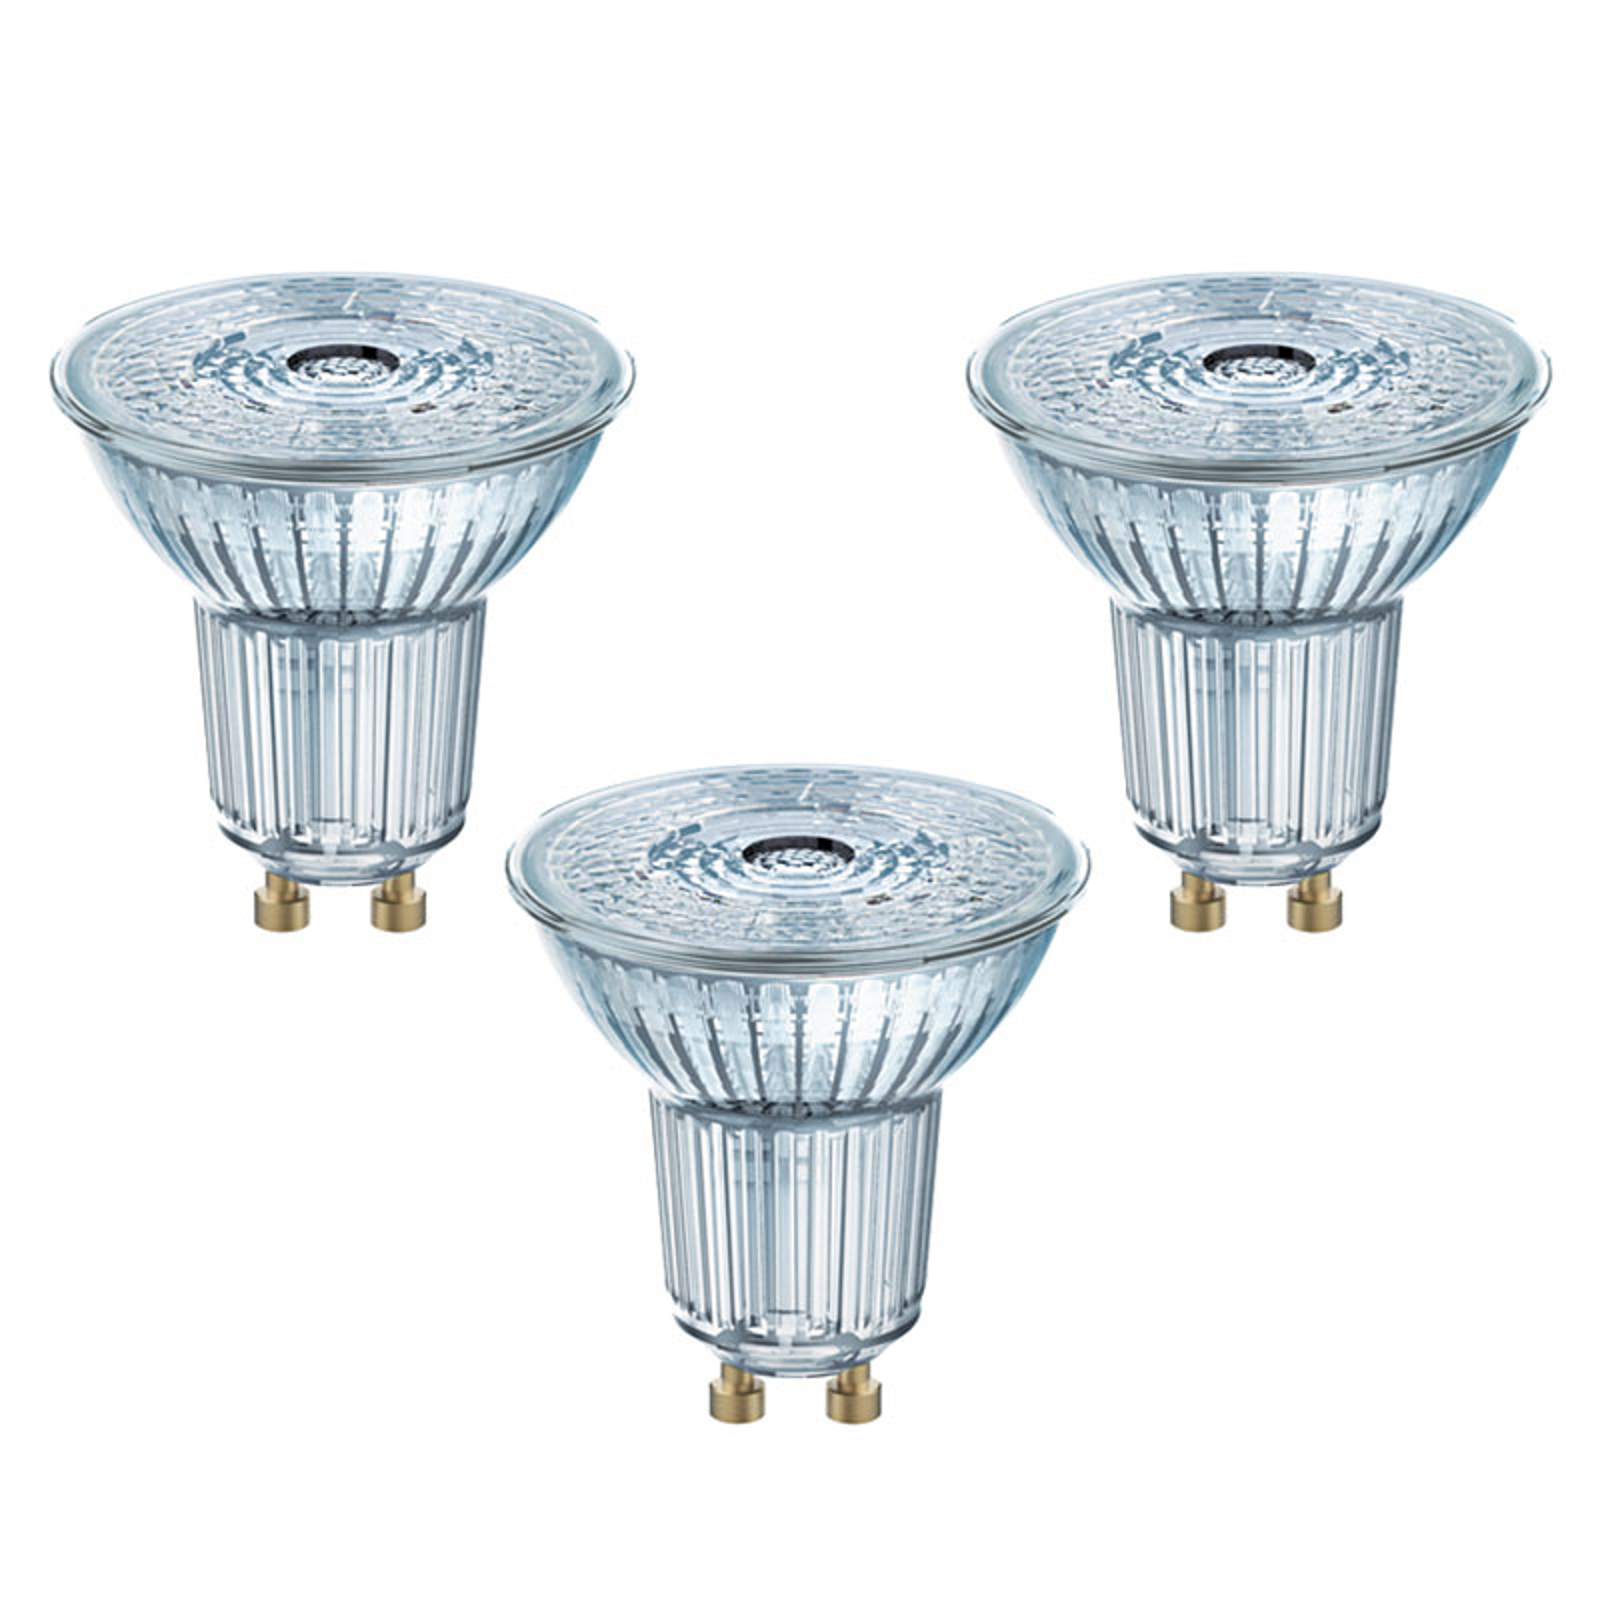 GU10 2,6W 827 LED-Reflektor Star 3er-Set